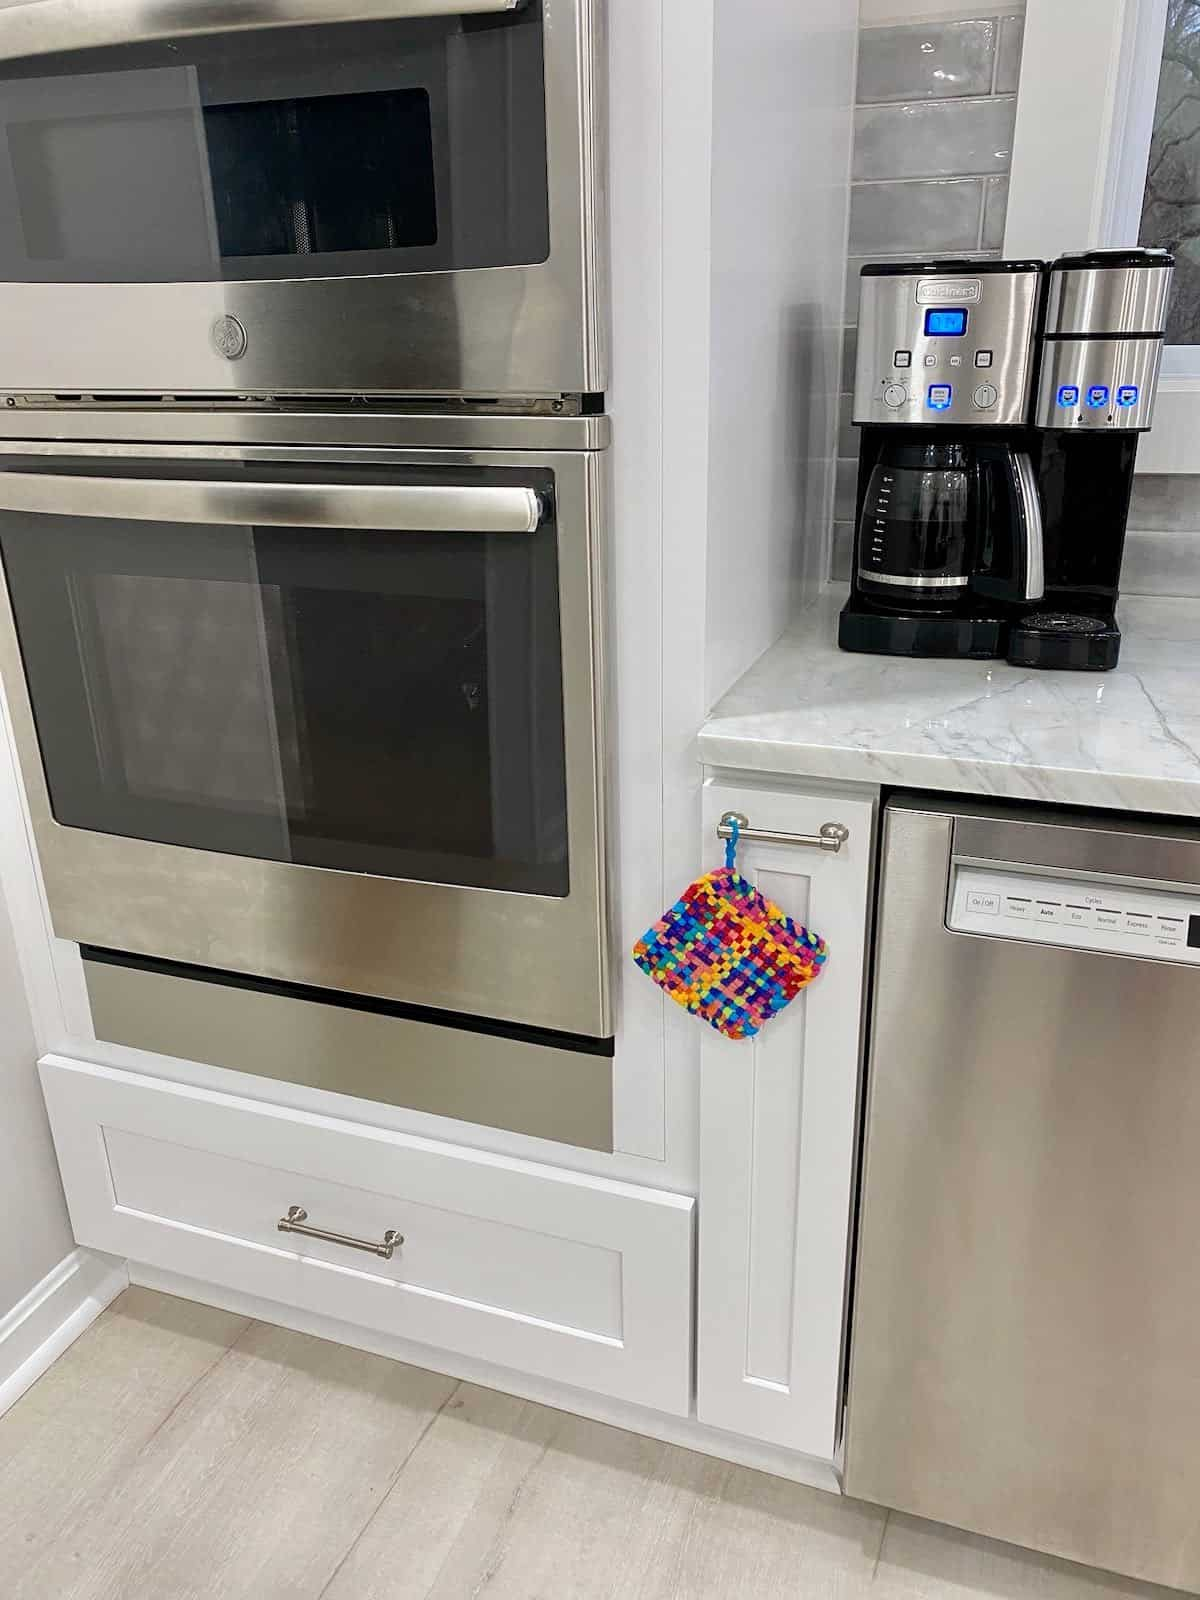 kitchen reveal with a rainbow potholder